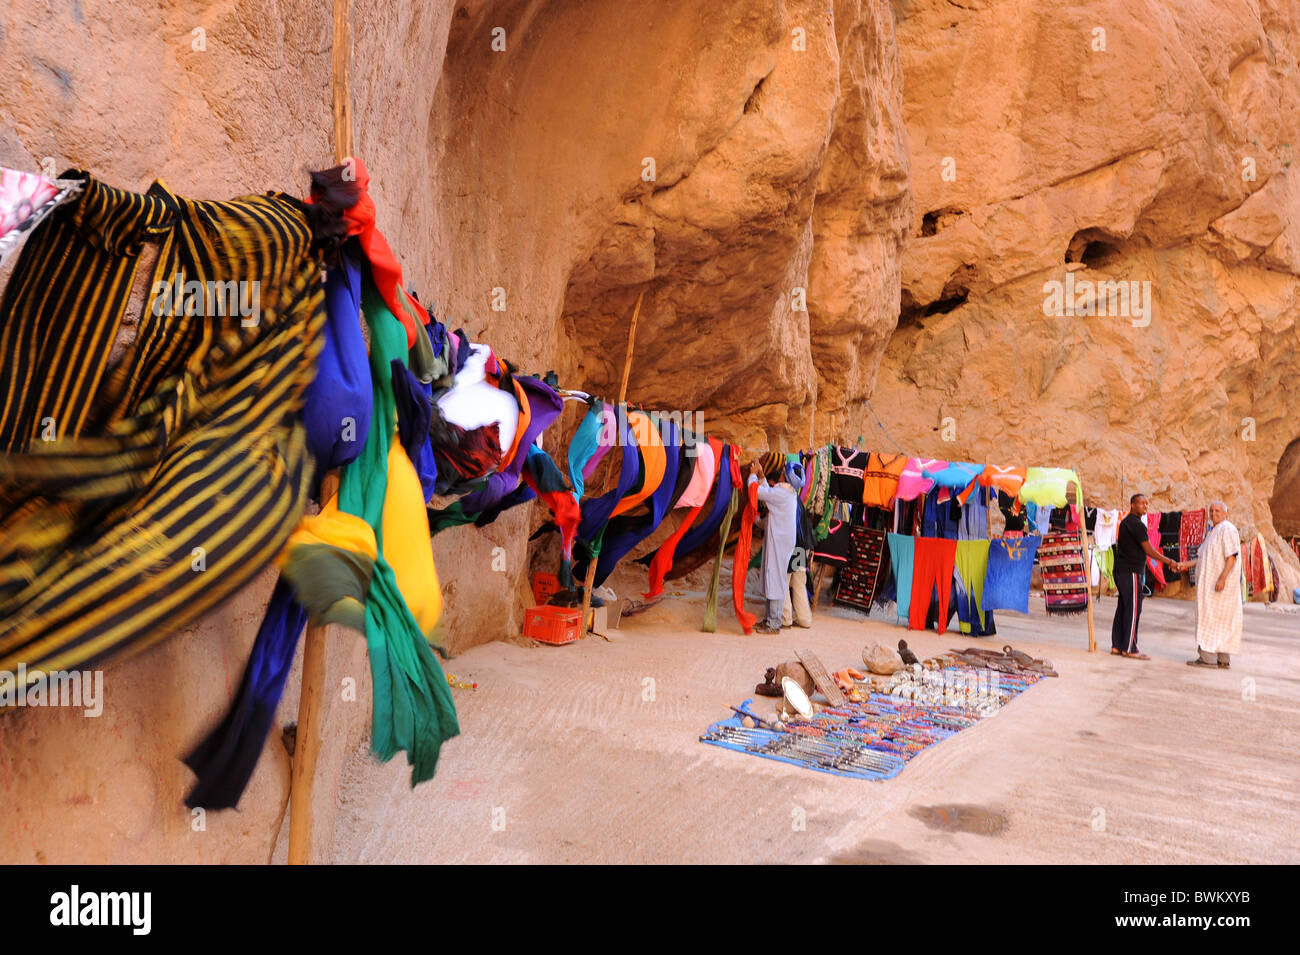 Brightly colored scarves for sale in the Todra Gorge, Southern Morocco. Stock Photo